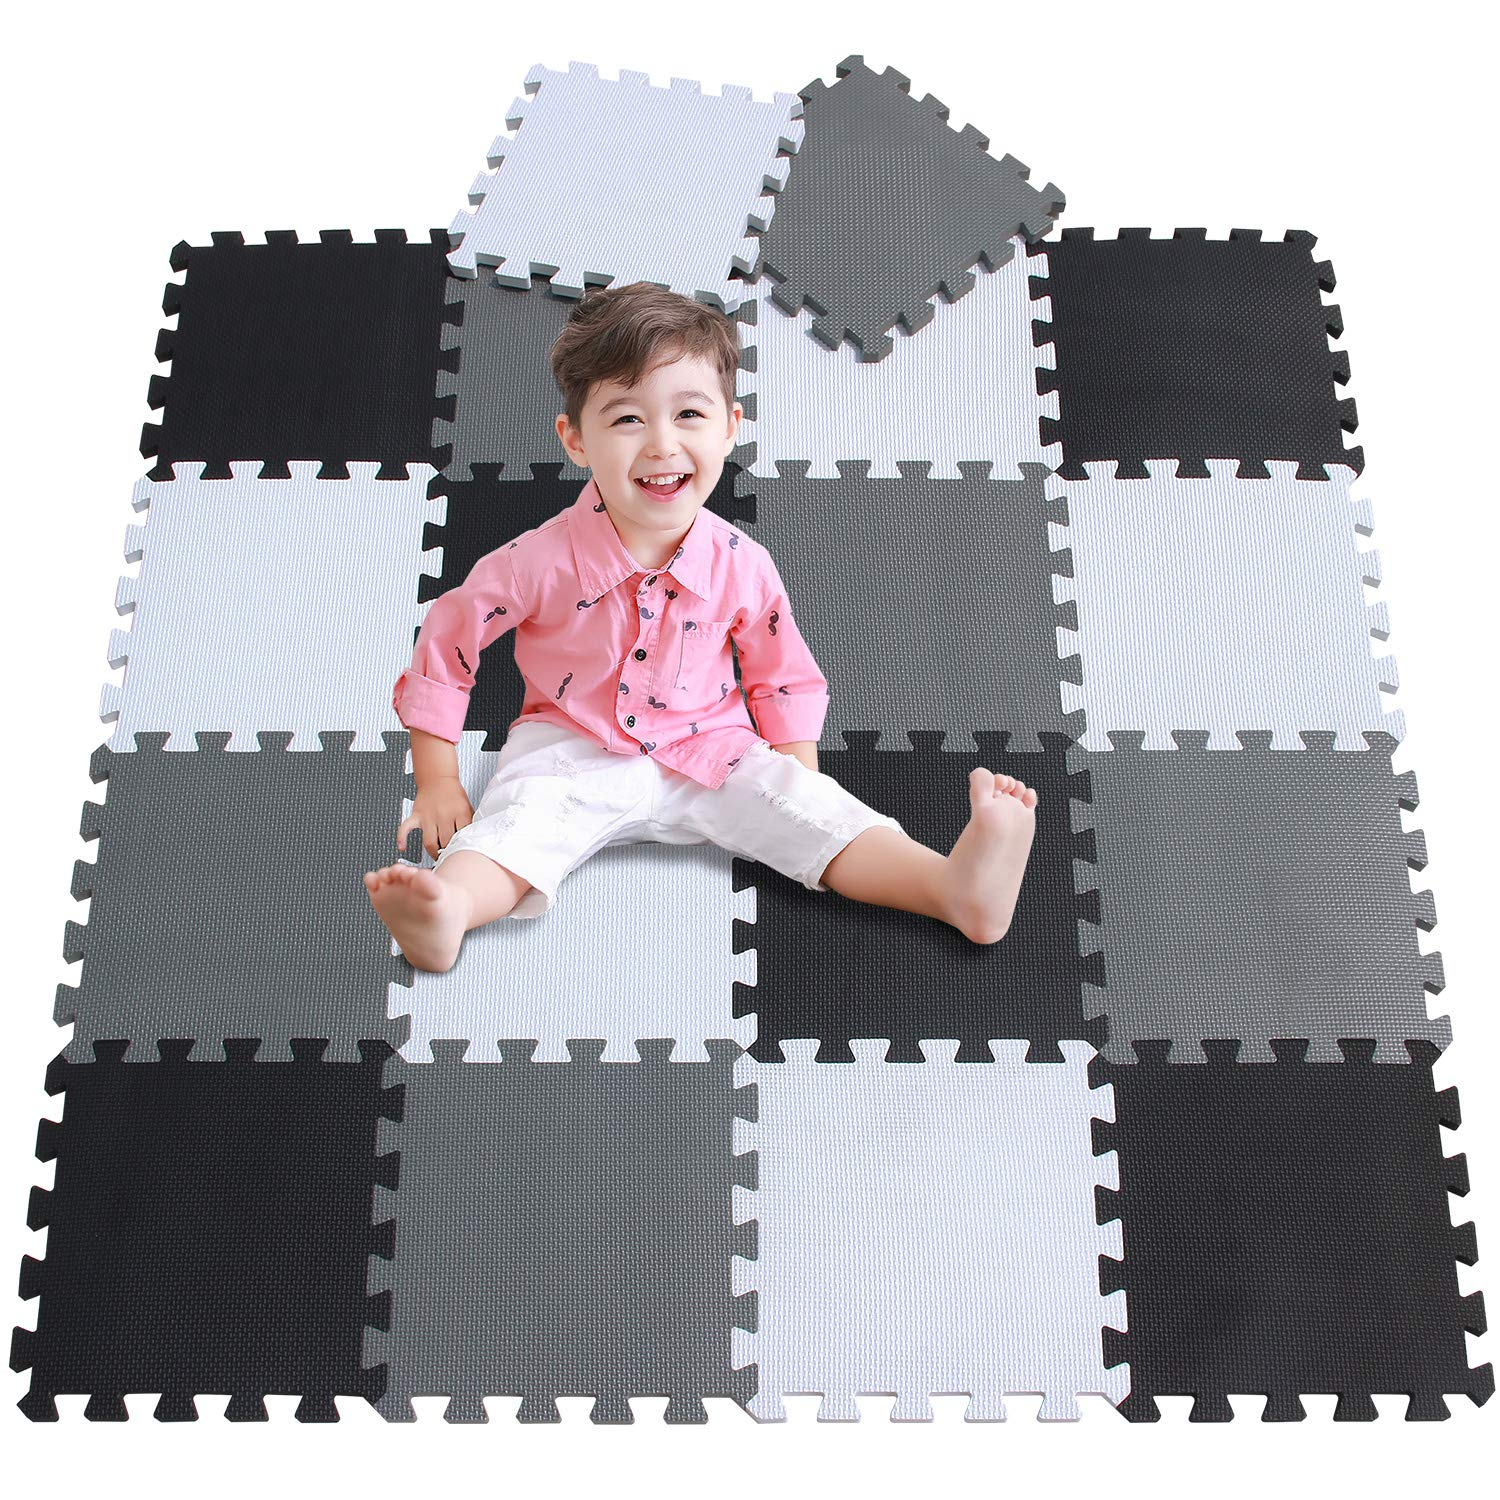 24 PCS Mat EVA Foam Baby Play For Floor Jigsaws Puzzle Portable Foldable UK 18